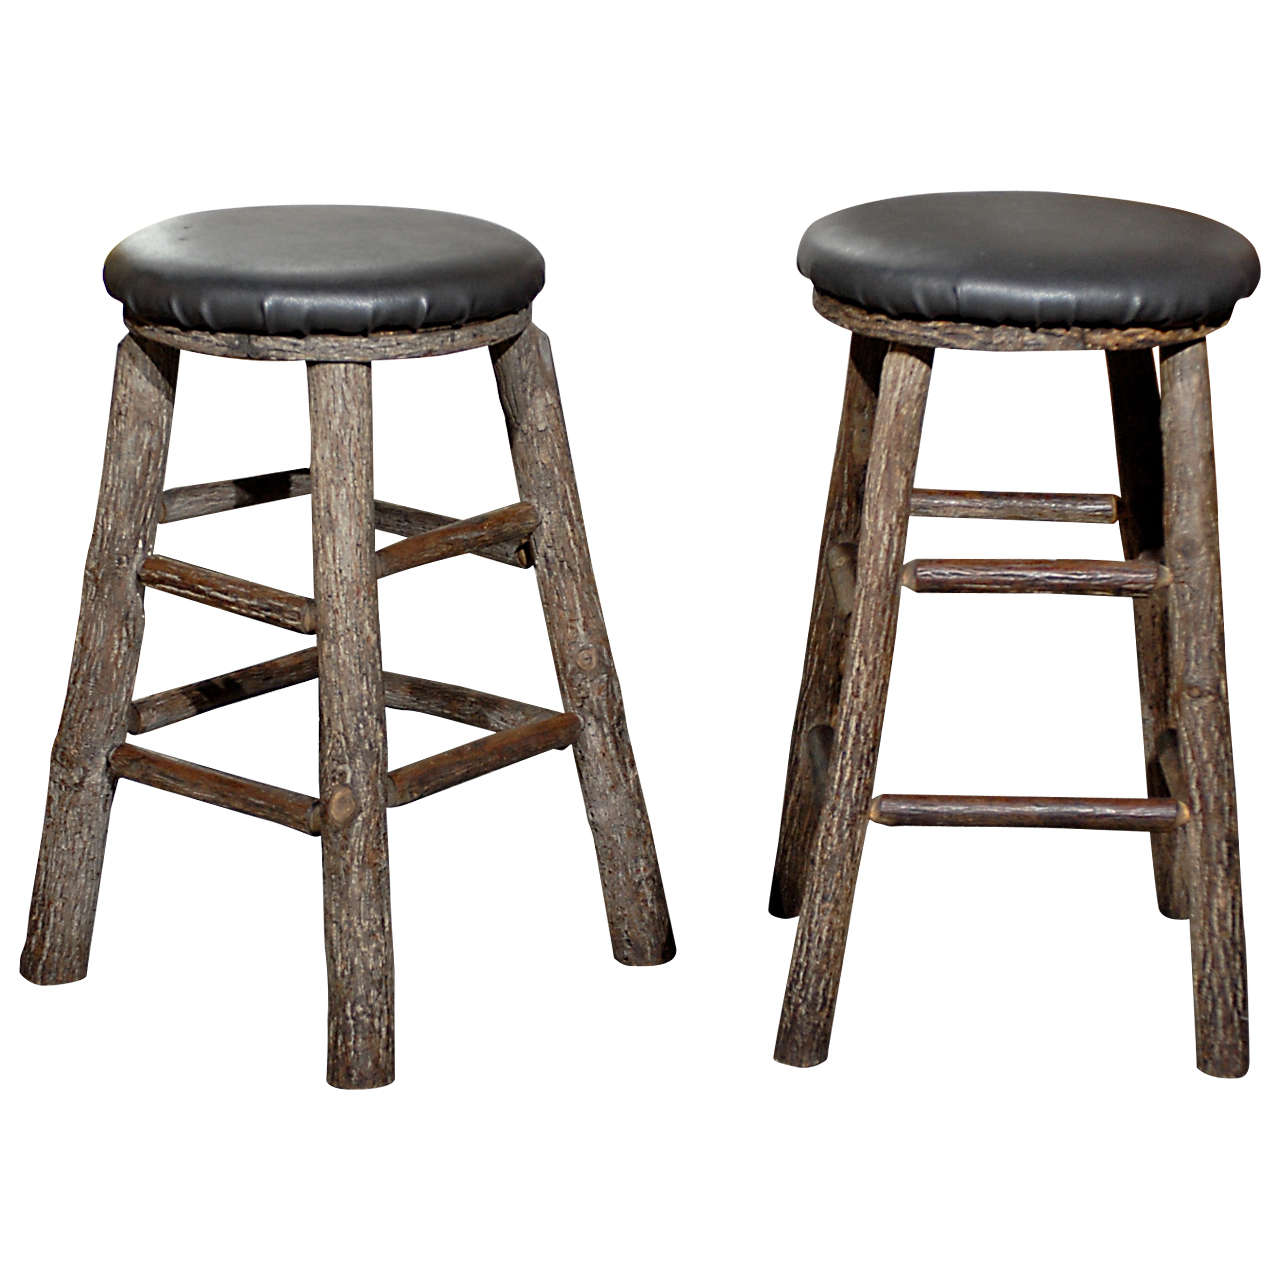 12 Round Vintage Bar Stools For Sale at 1stdibs